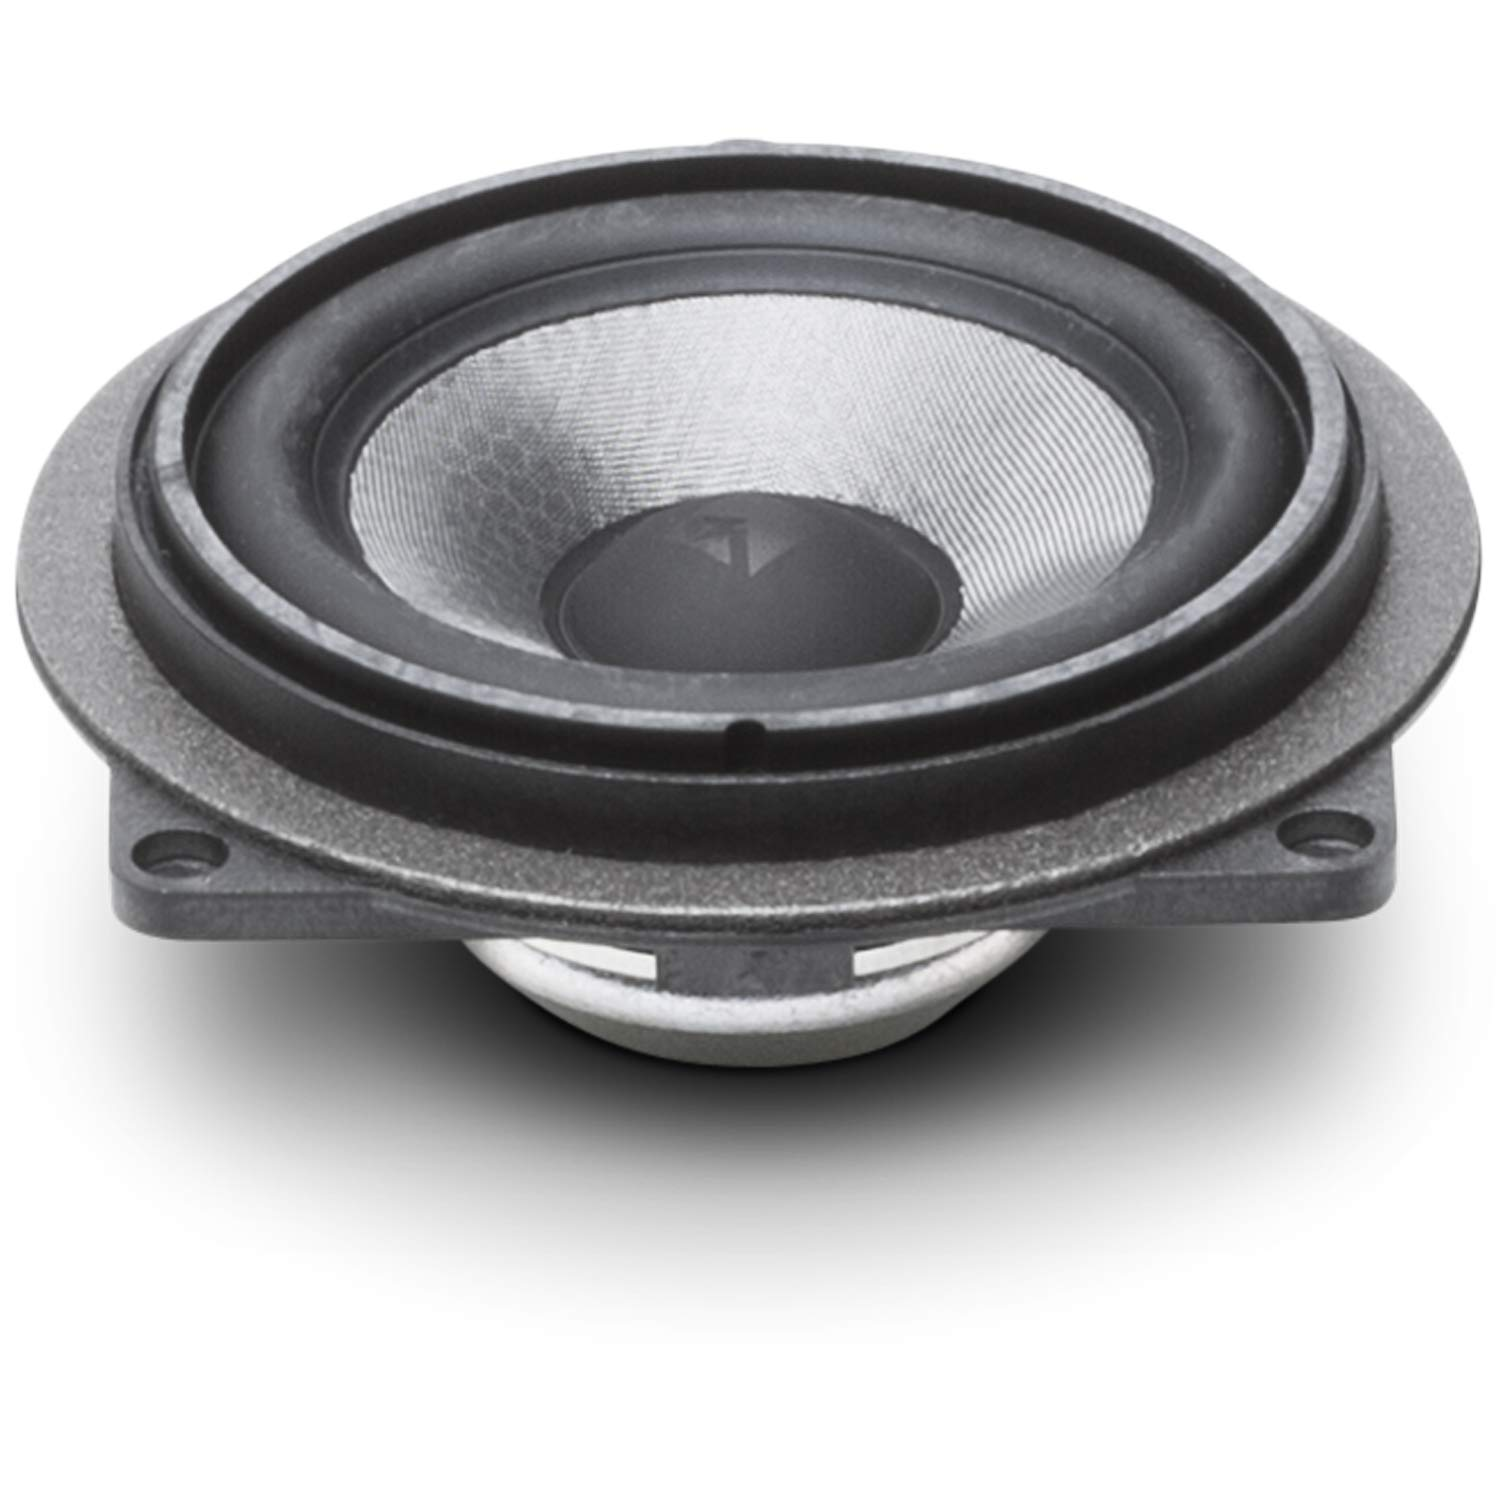 Rockford Power Series OE Integration - BMW Direct Fit Speakers T3-BMW2